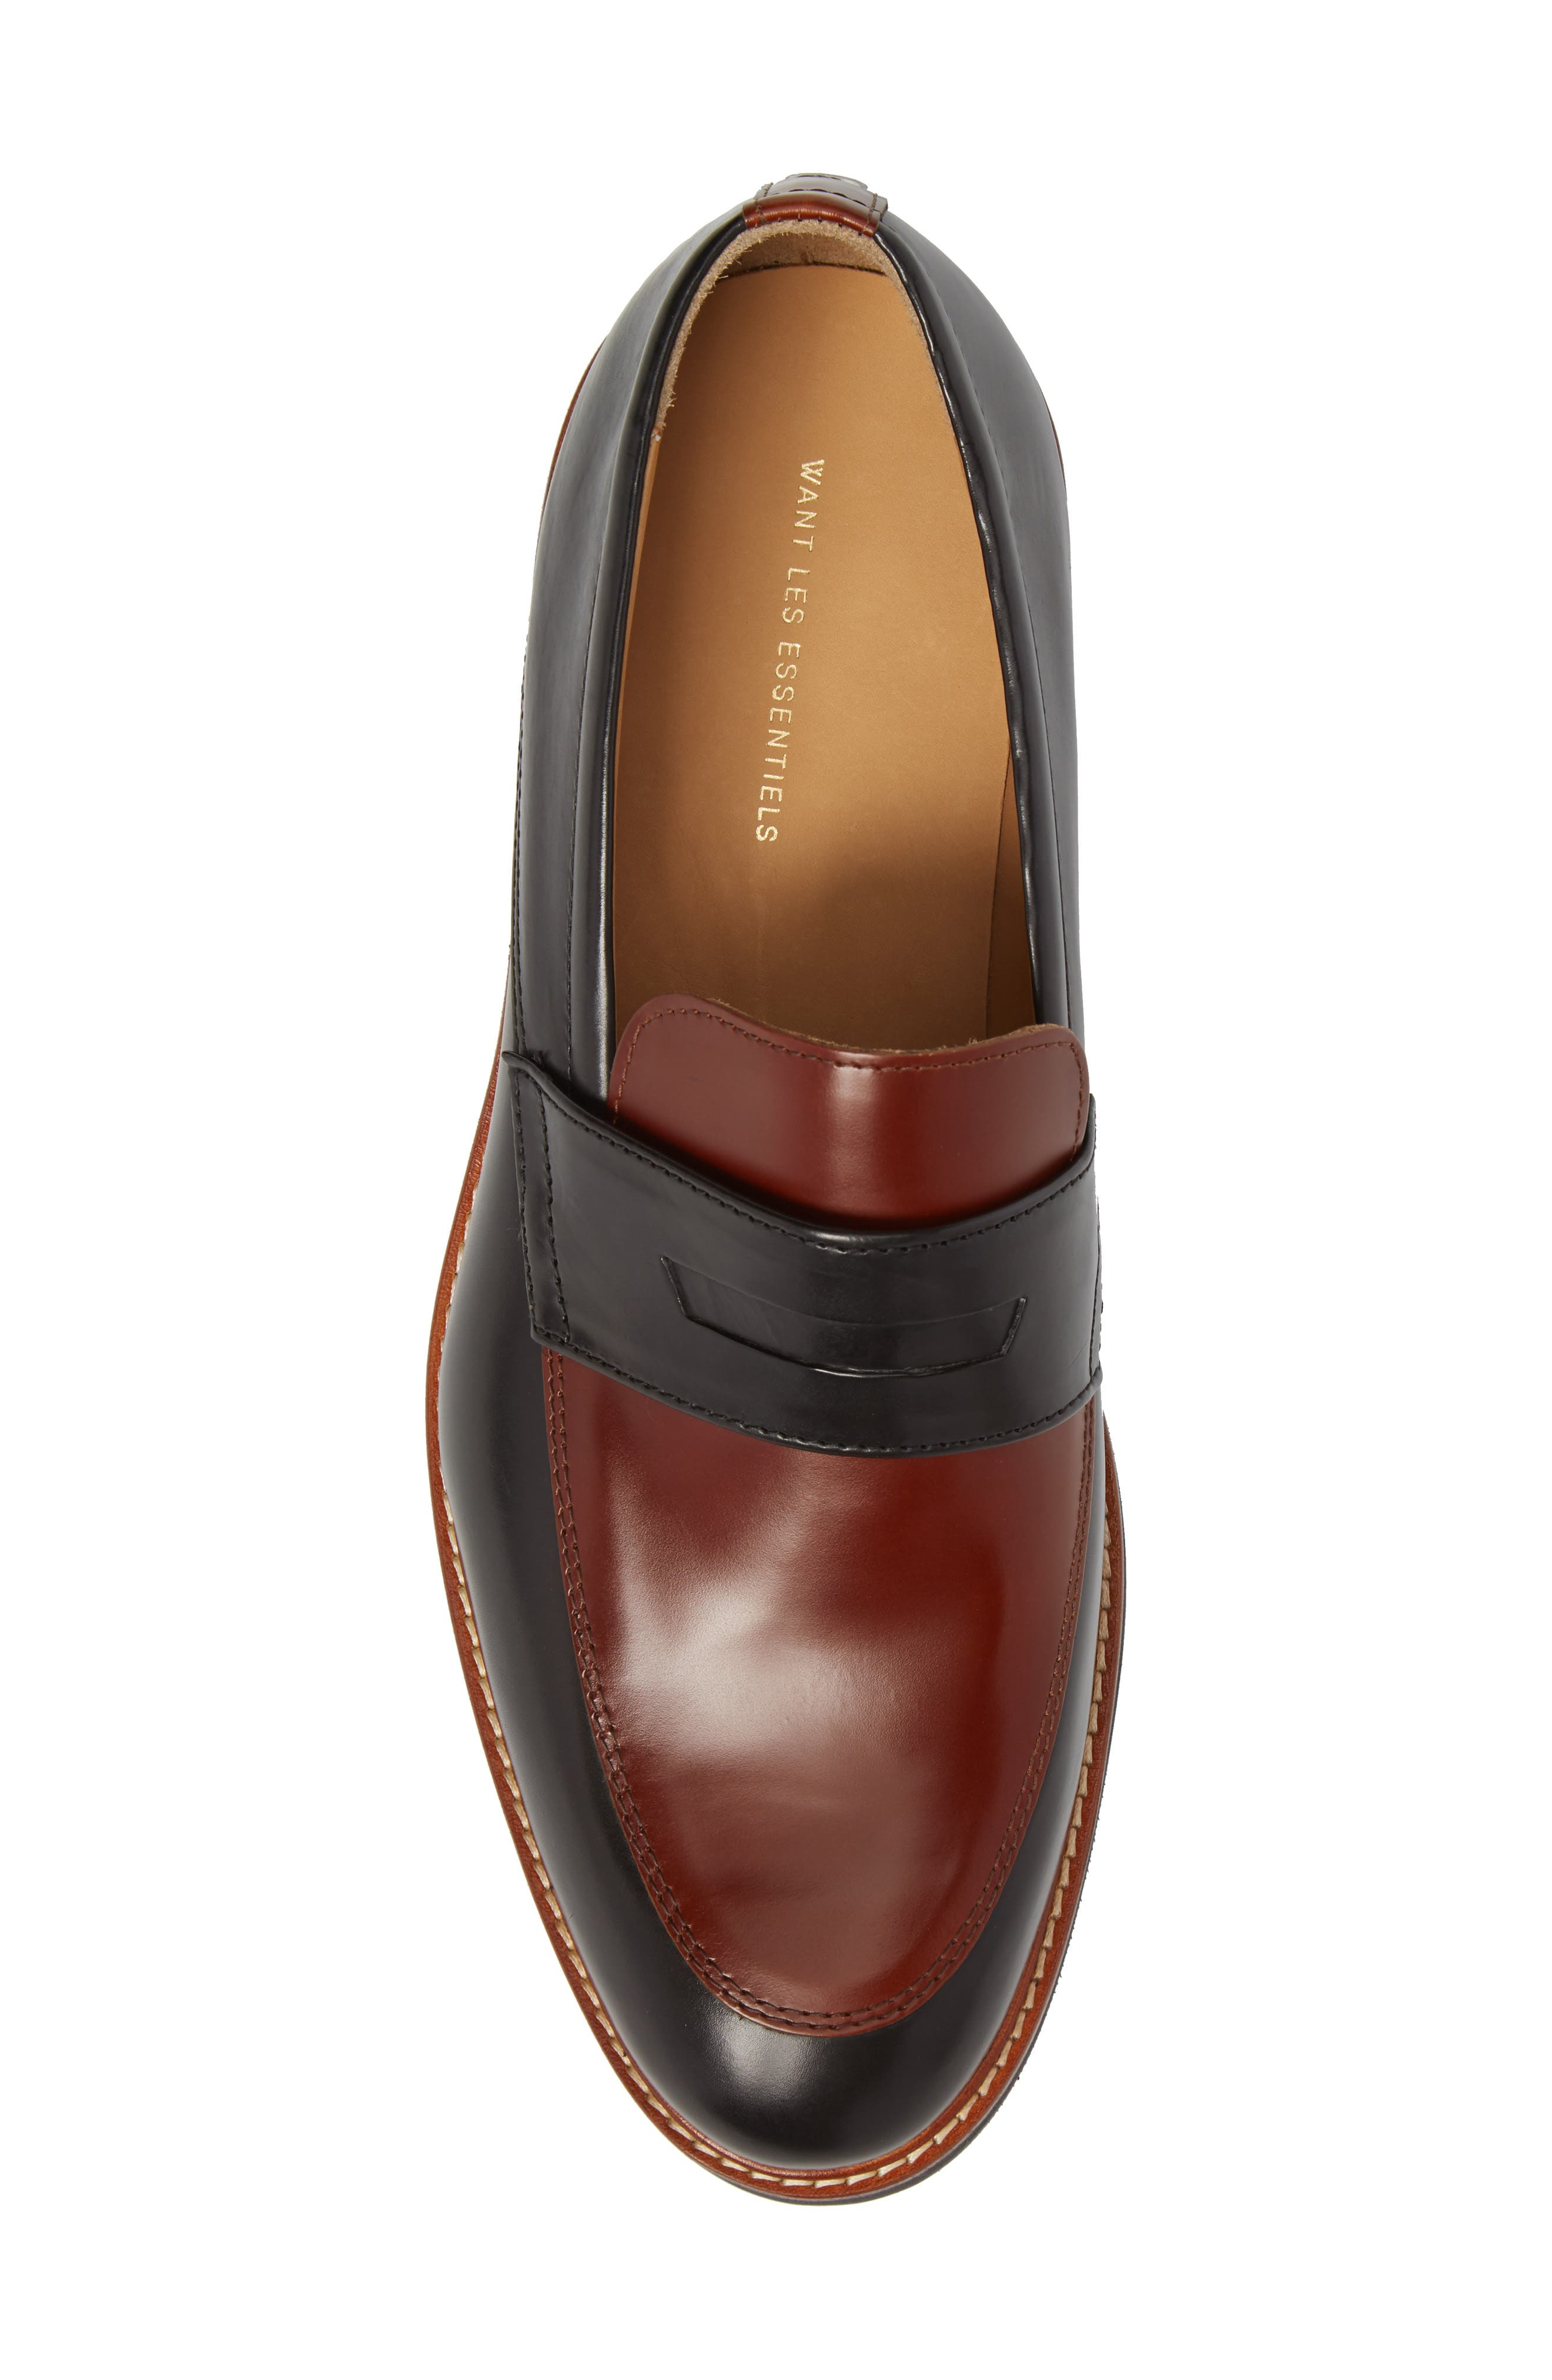 Marcus Penny Loafer,                             Alternate thumbnail 5, color,                             Black/ Cognac